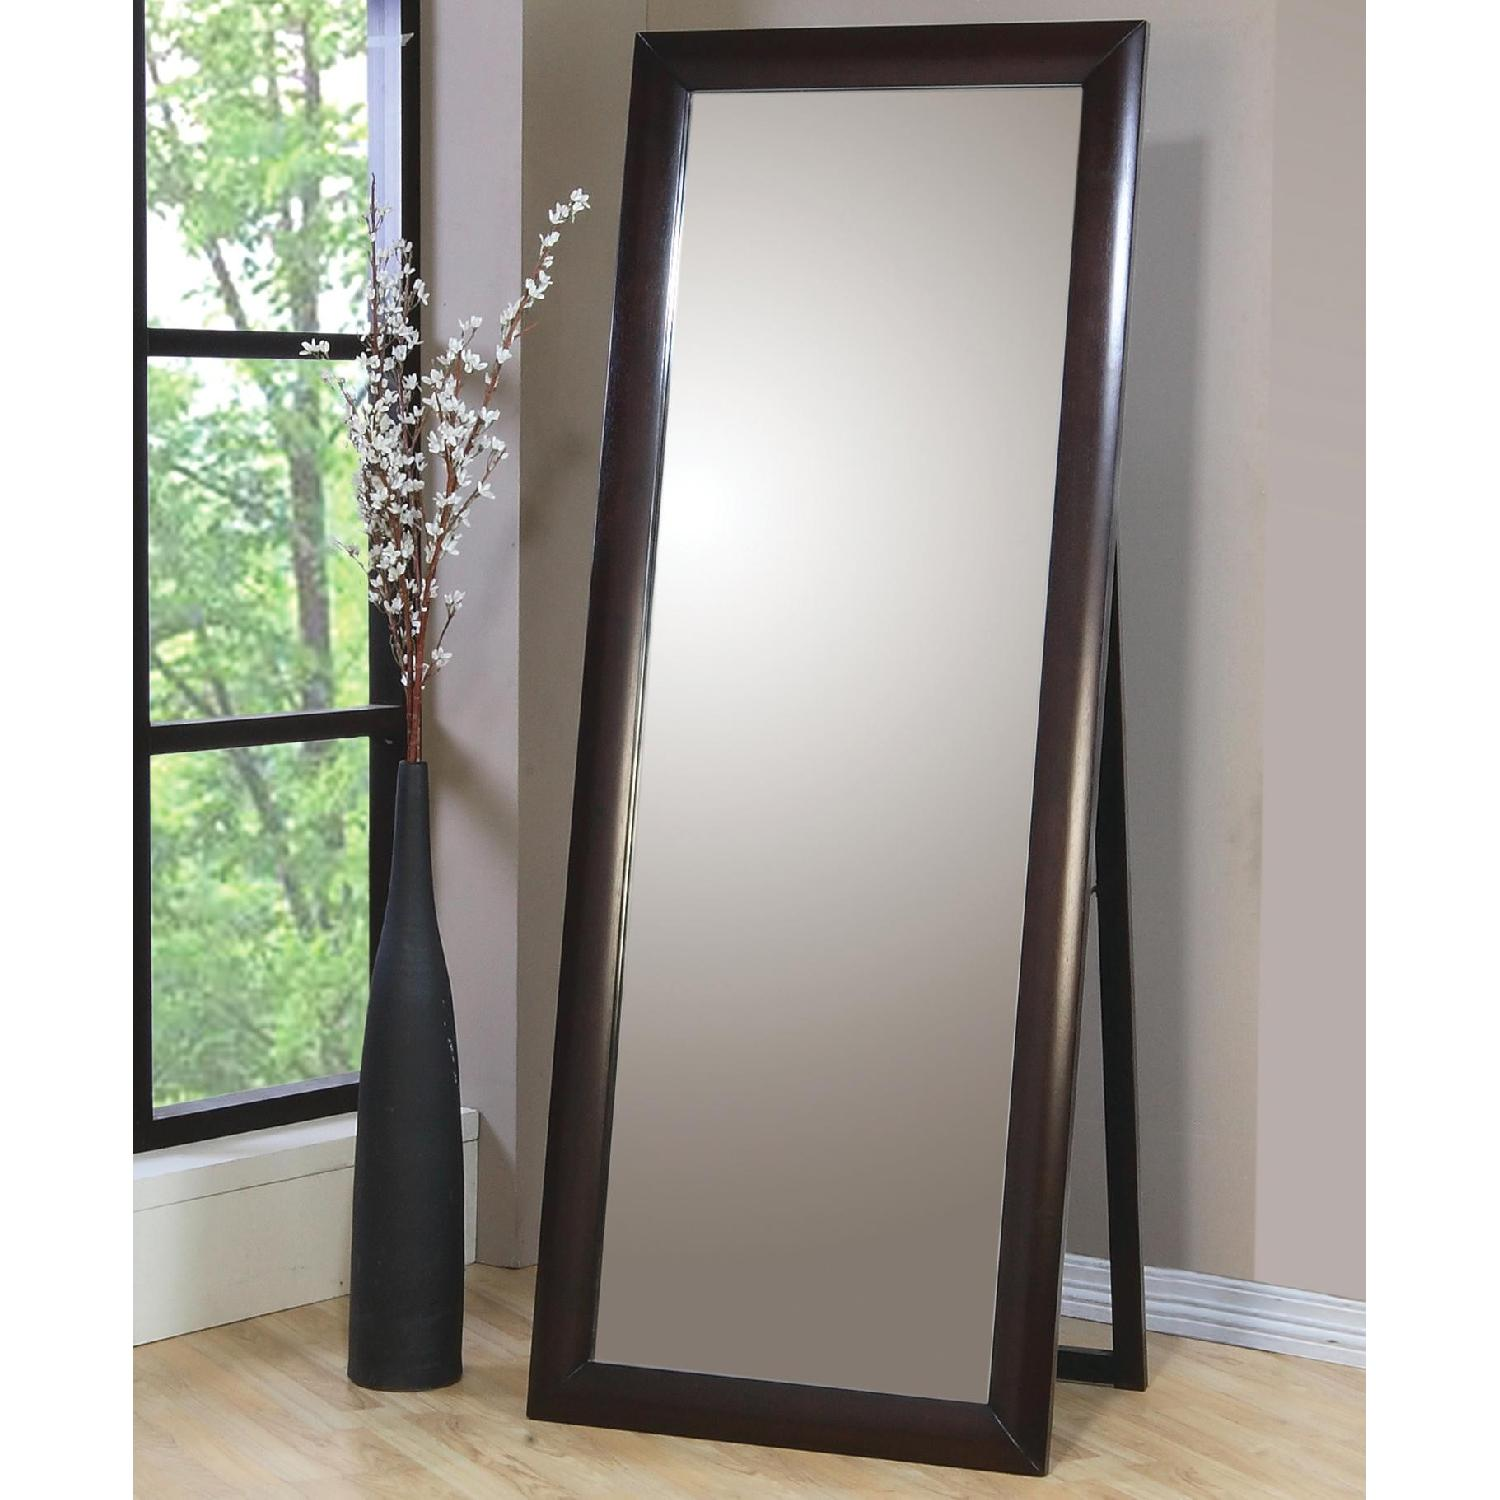 Contemporary Standing Floor Mirror in Warm Brown Finish - image-1